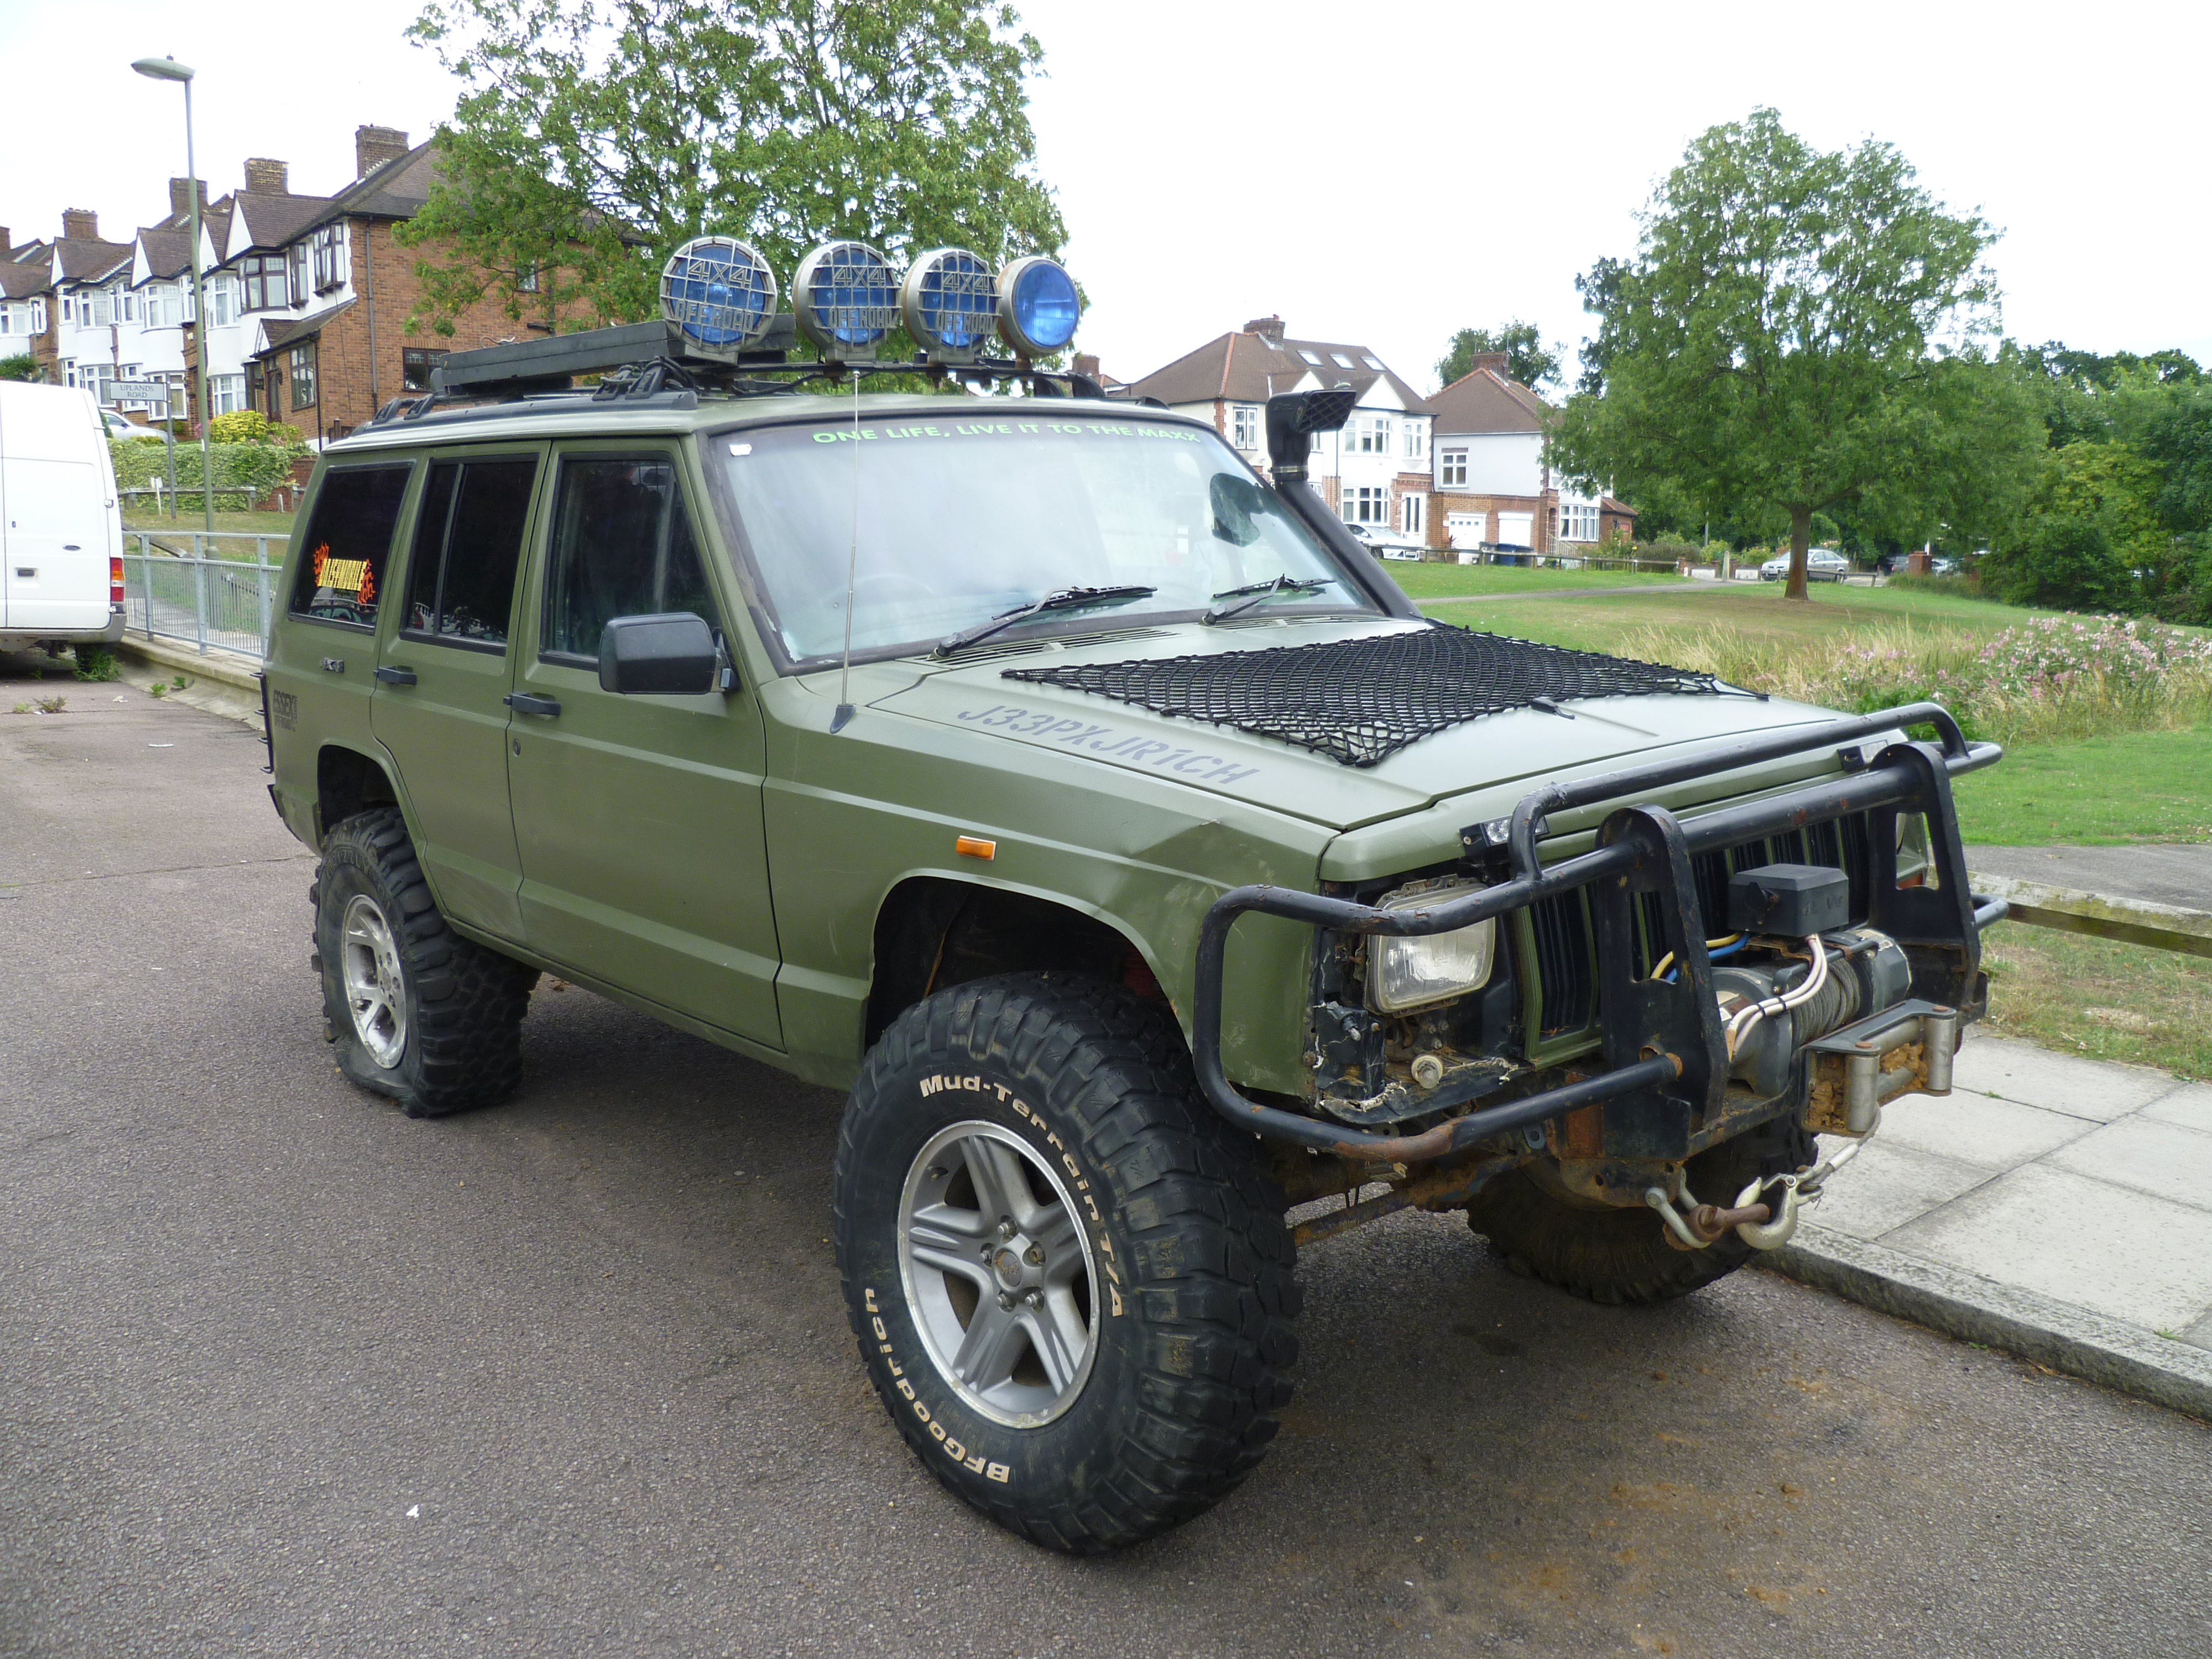 File:Essex Off Road vehicle 2 JPG - Wikimedia Commons